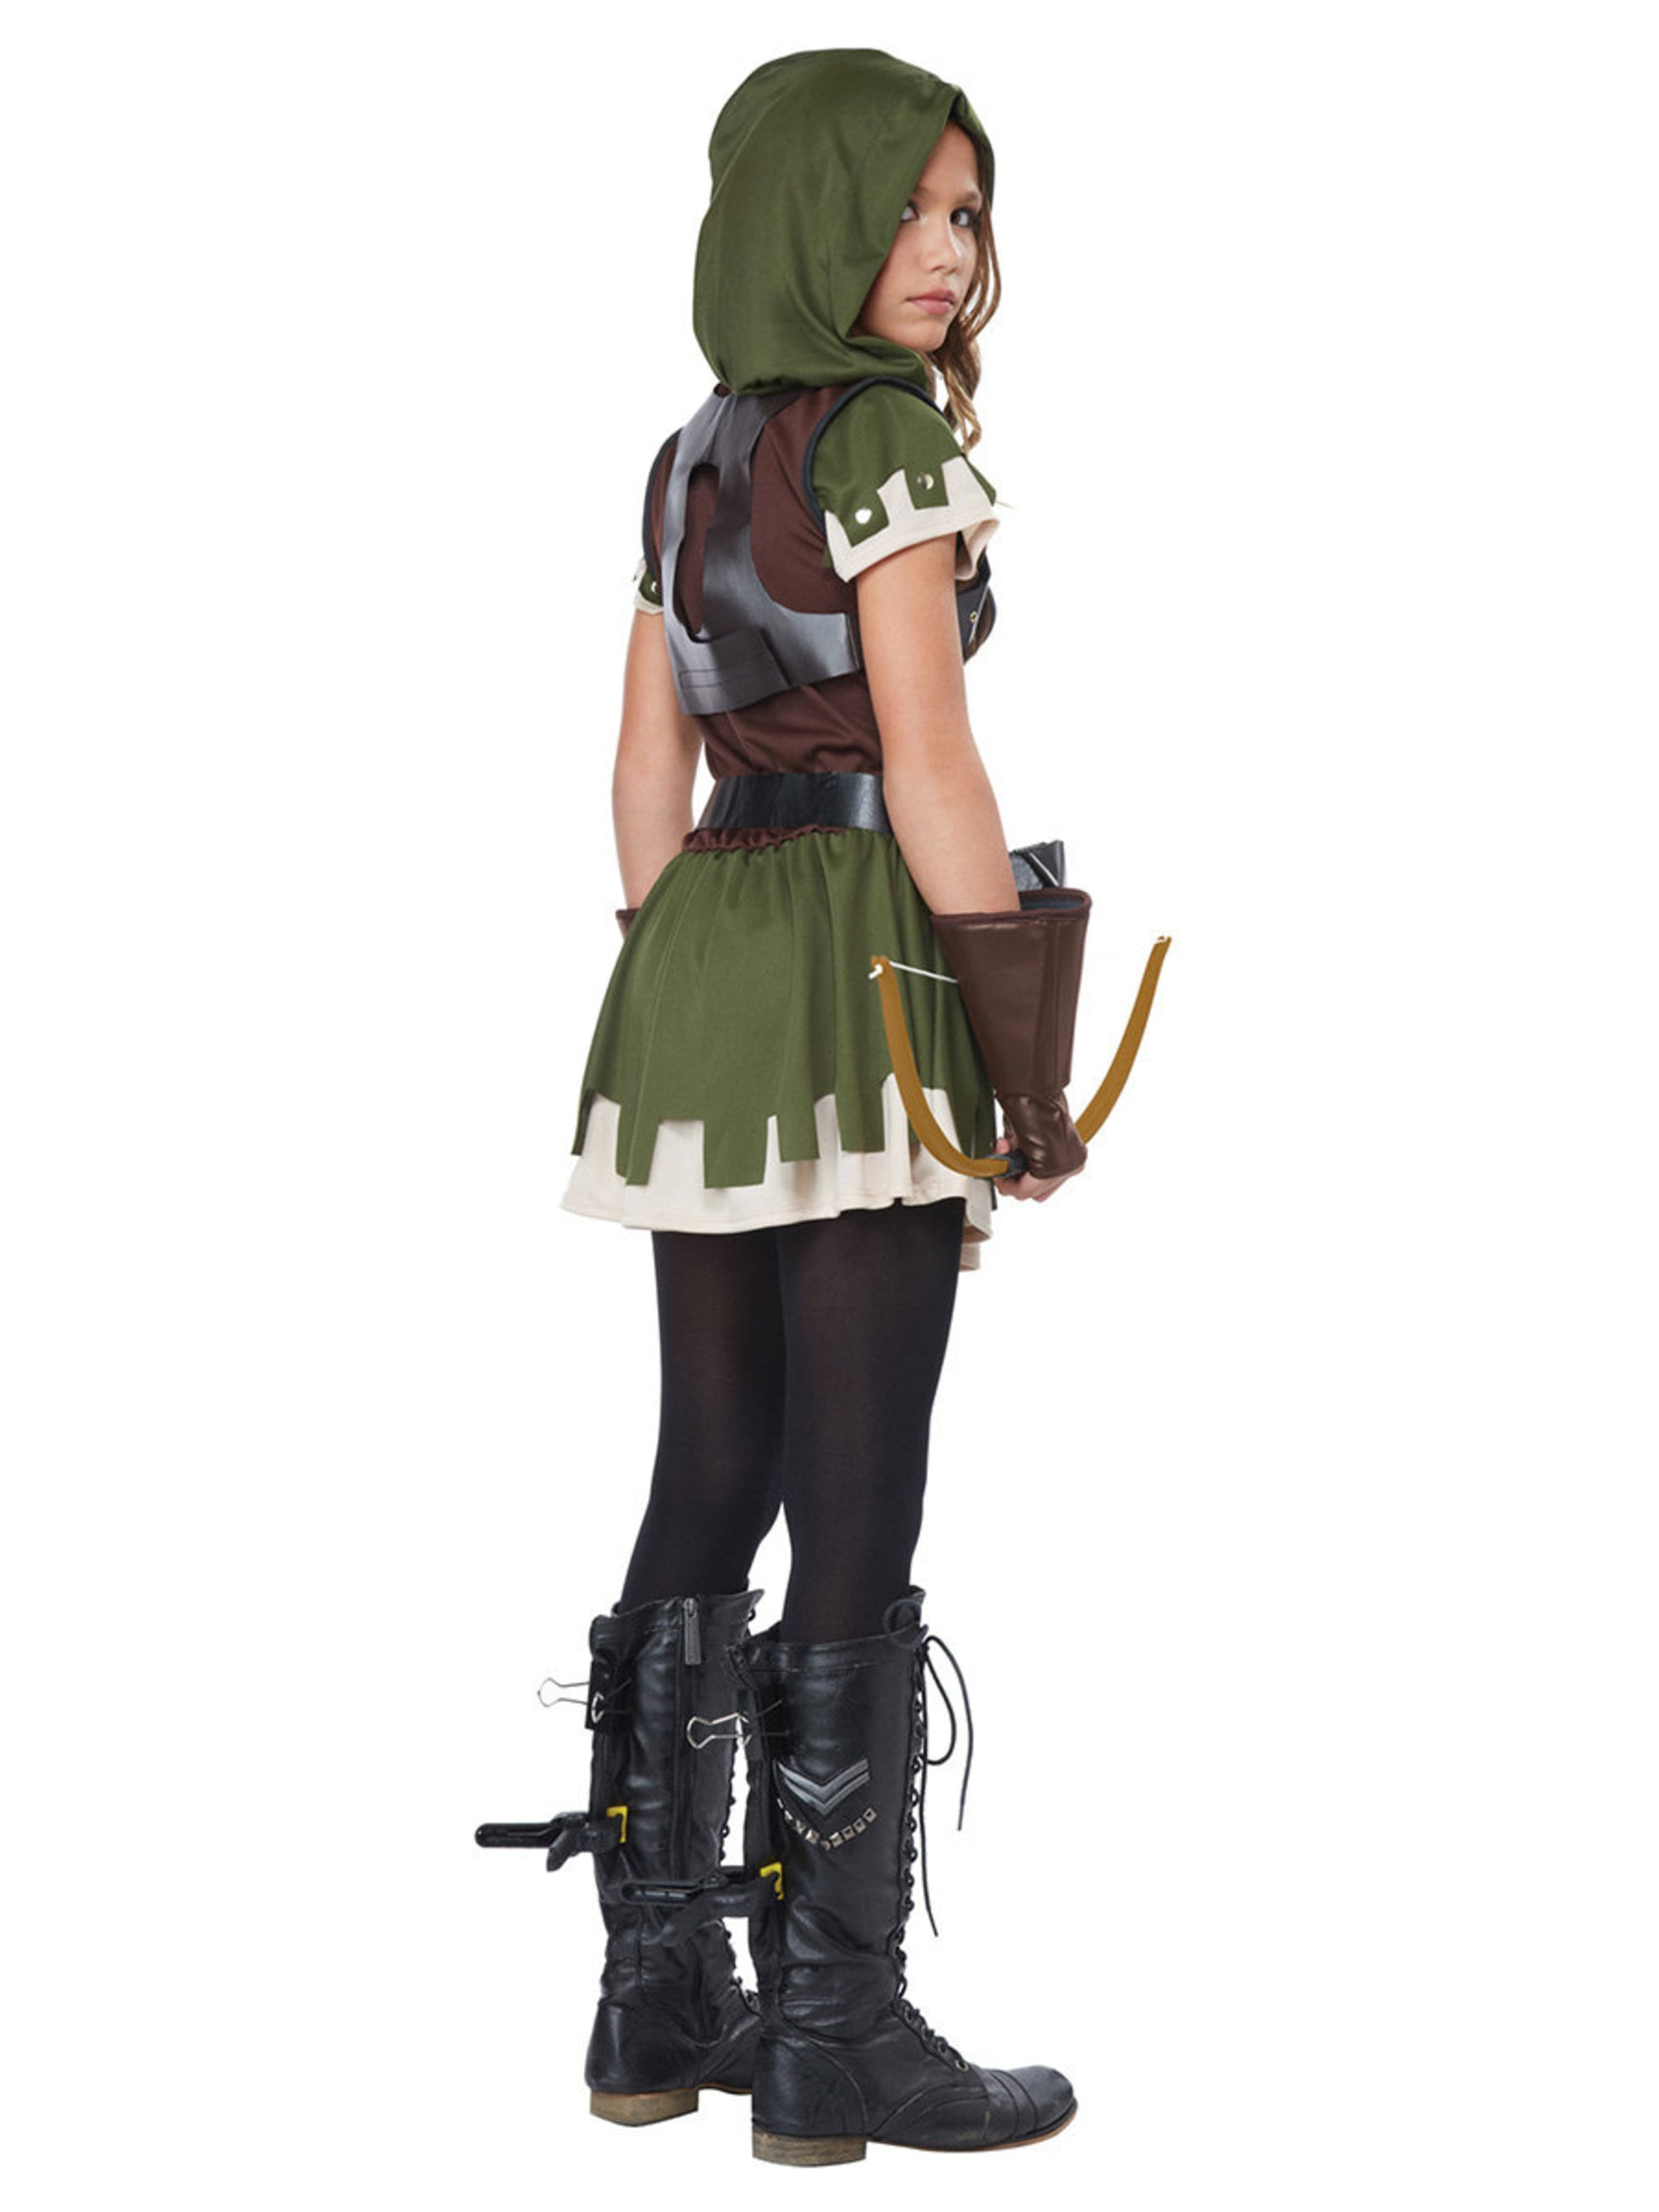 ad5ab803c06 Miss Robin Hood Girls Costume. View Larger Image. Larger View of Product   Larger View of Product  Larger View of Product ...